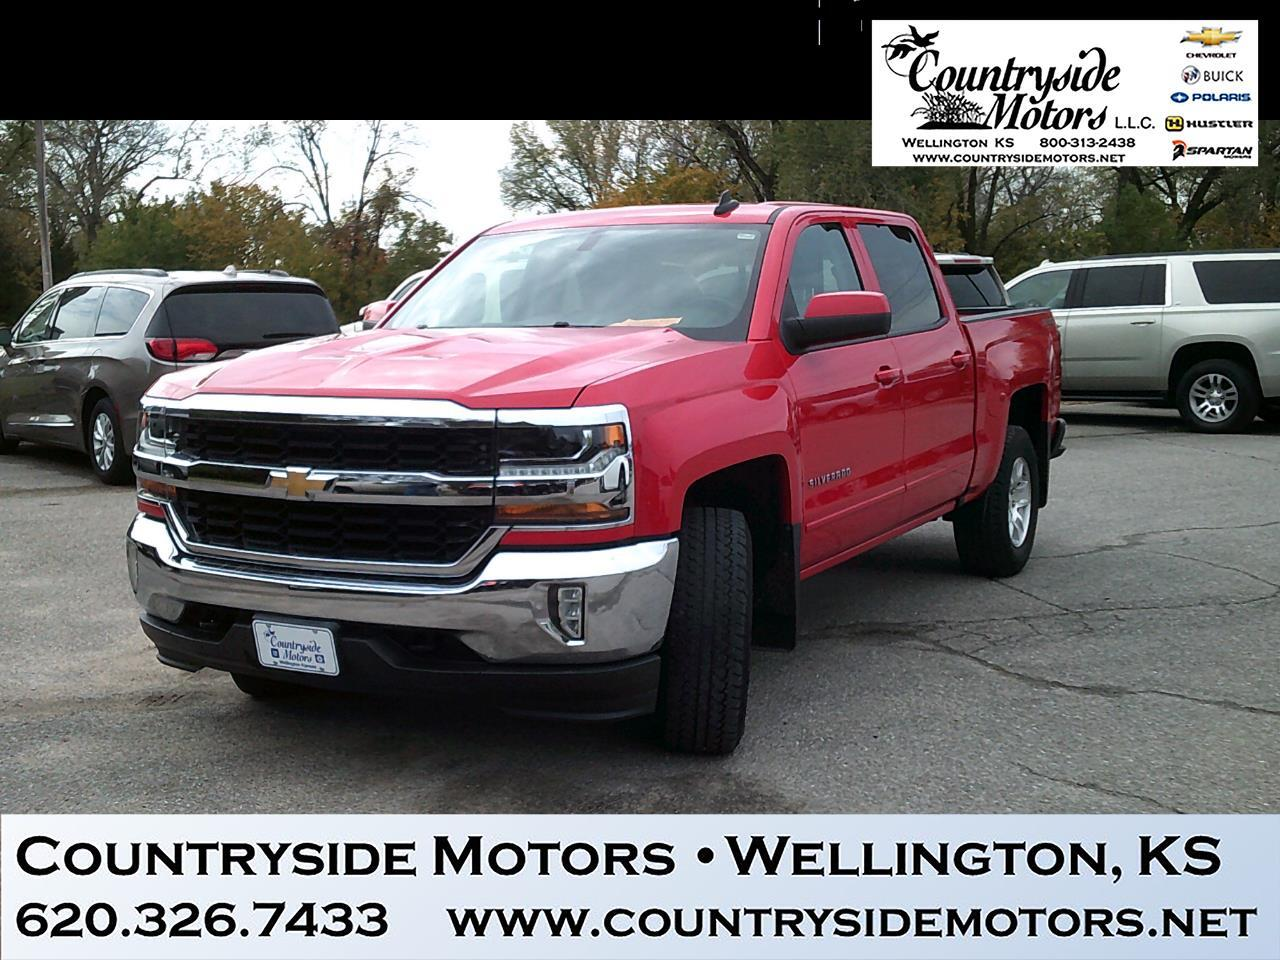 2016 Chevrolet SILVERADO 4WD CREW CAB LT ALL STAR